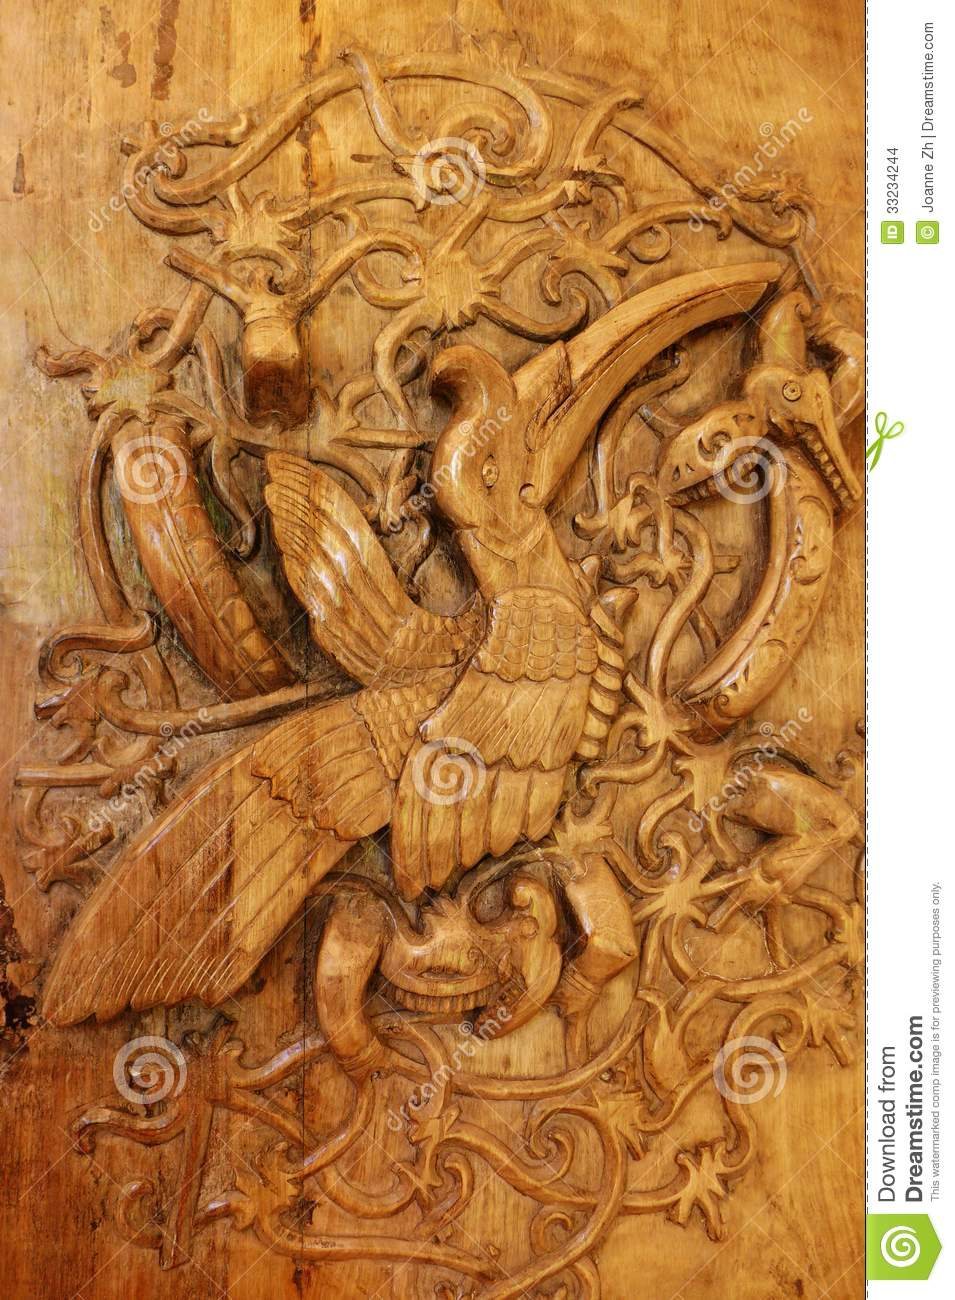 Borneo Tribal Hornbill Bird Art Stock Images - Image: 33234244